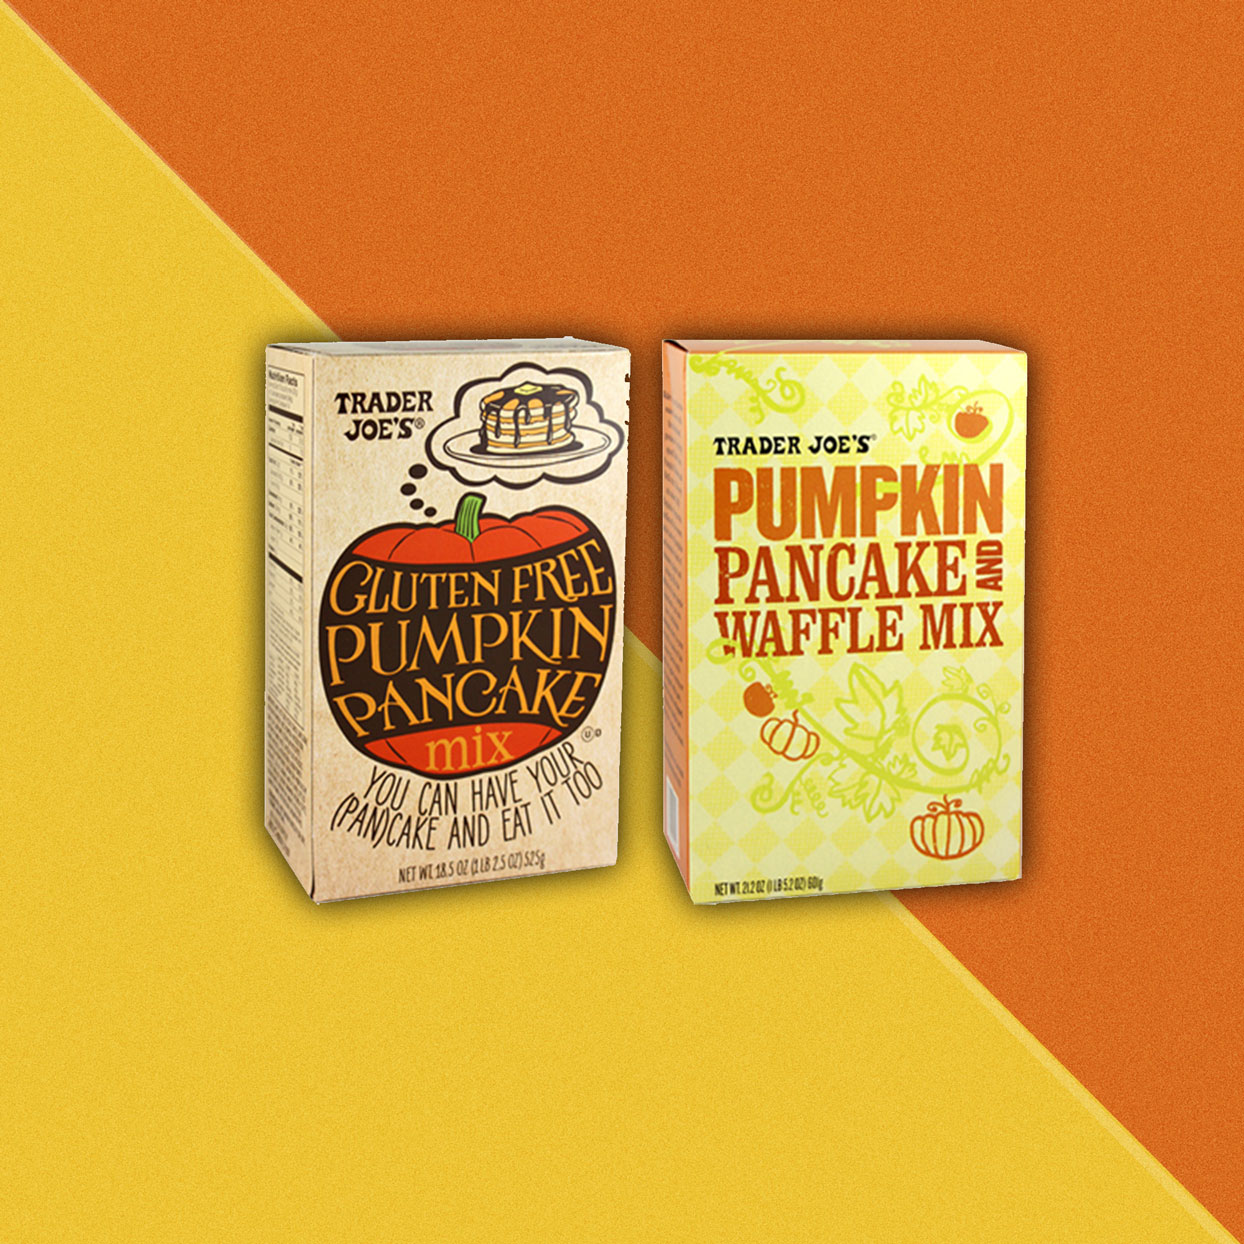 Pumpkin flavored pancake mix